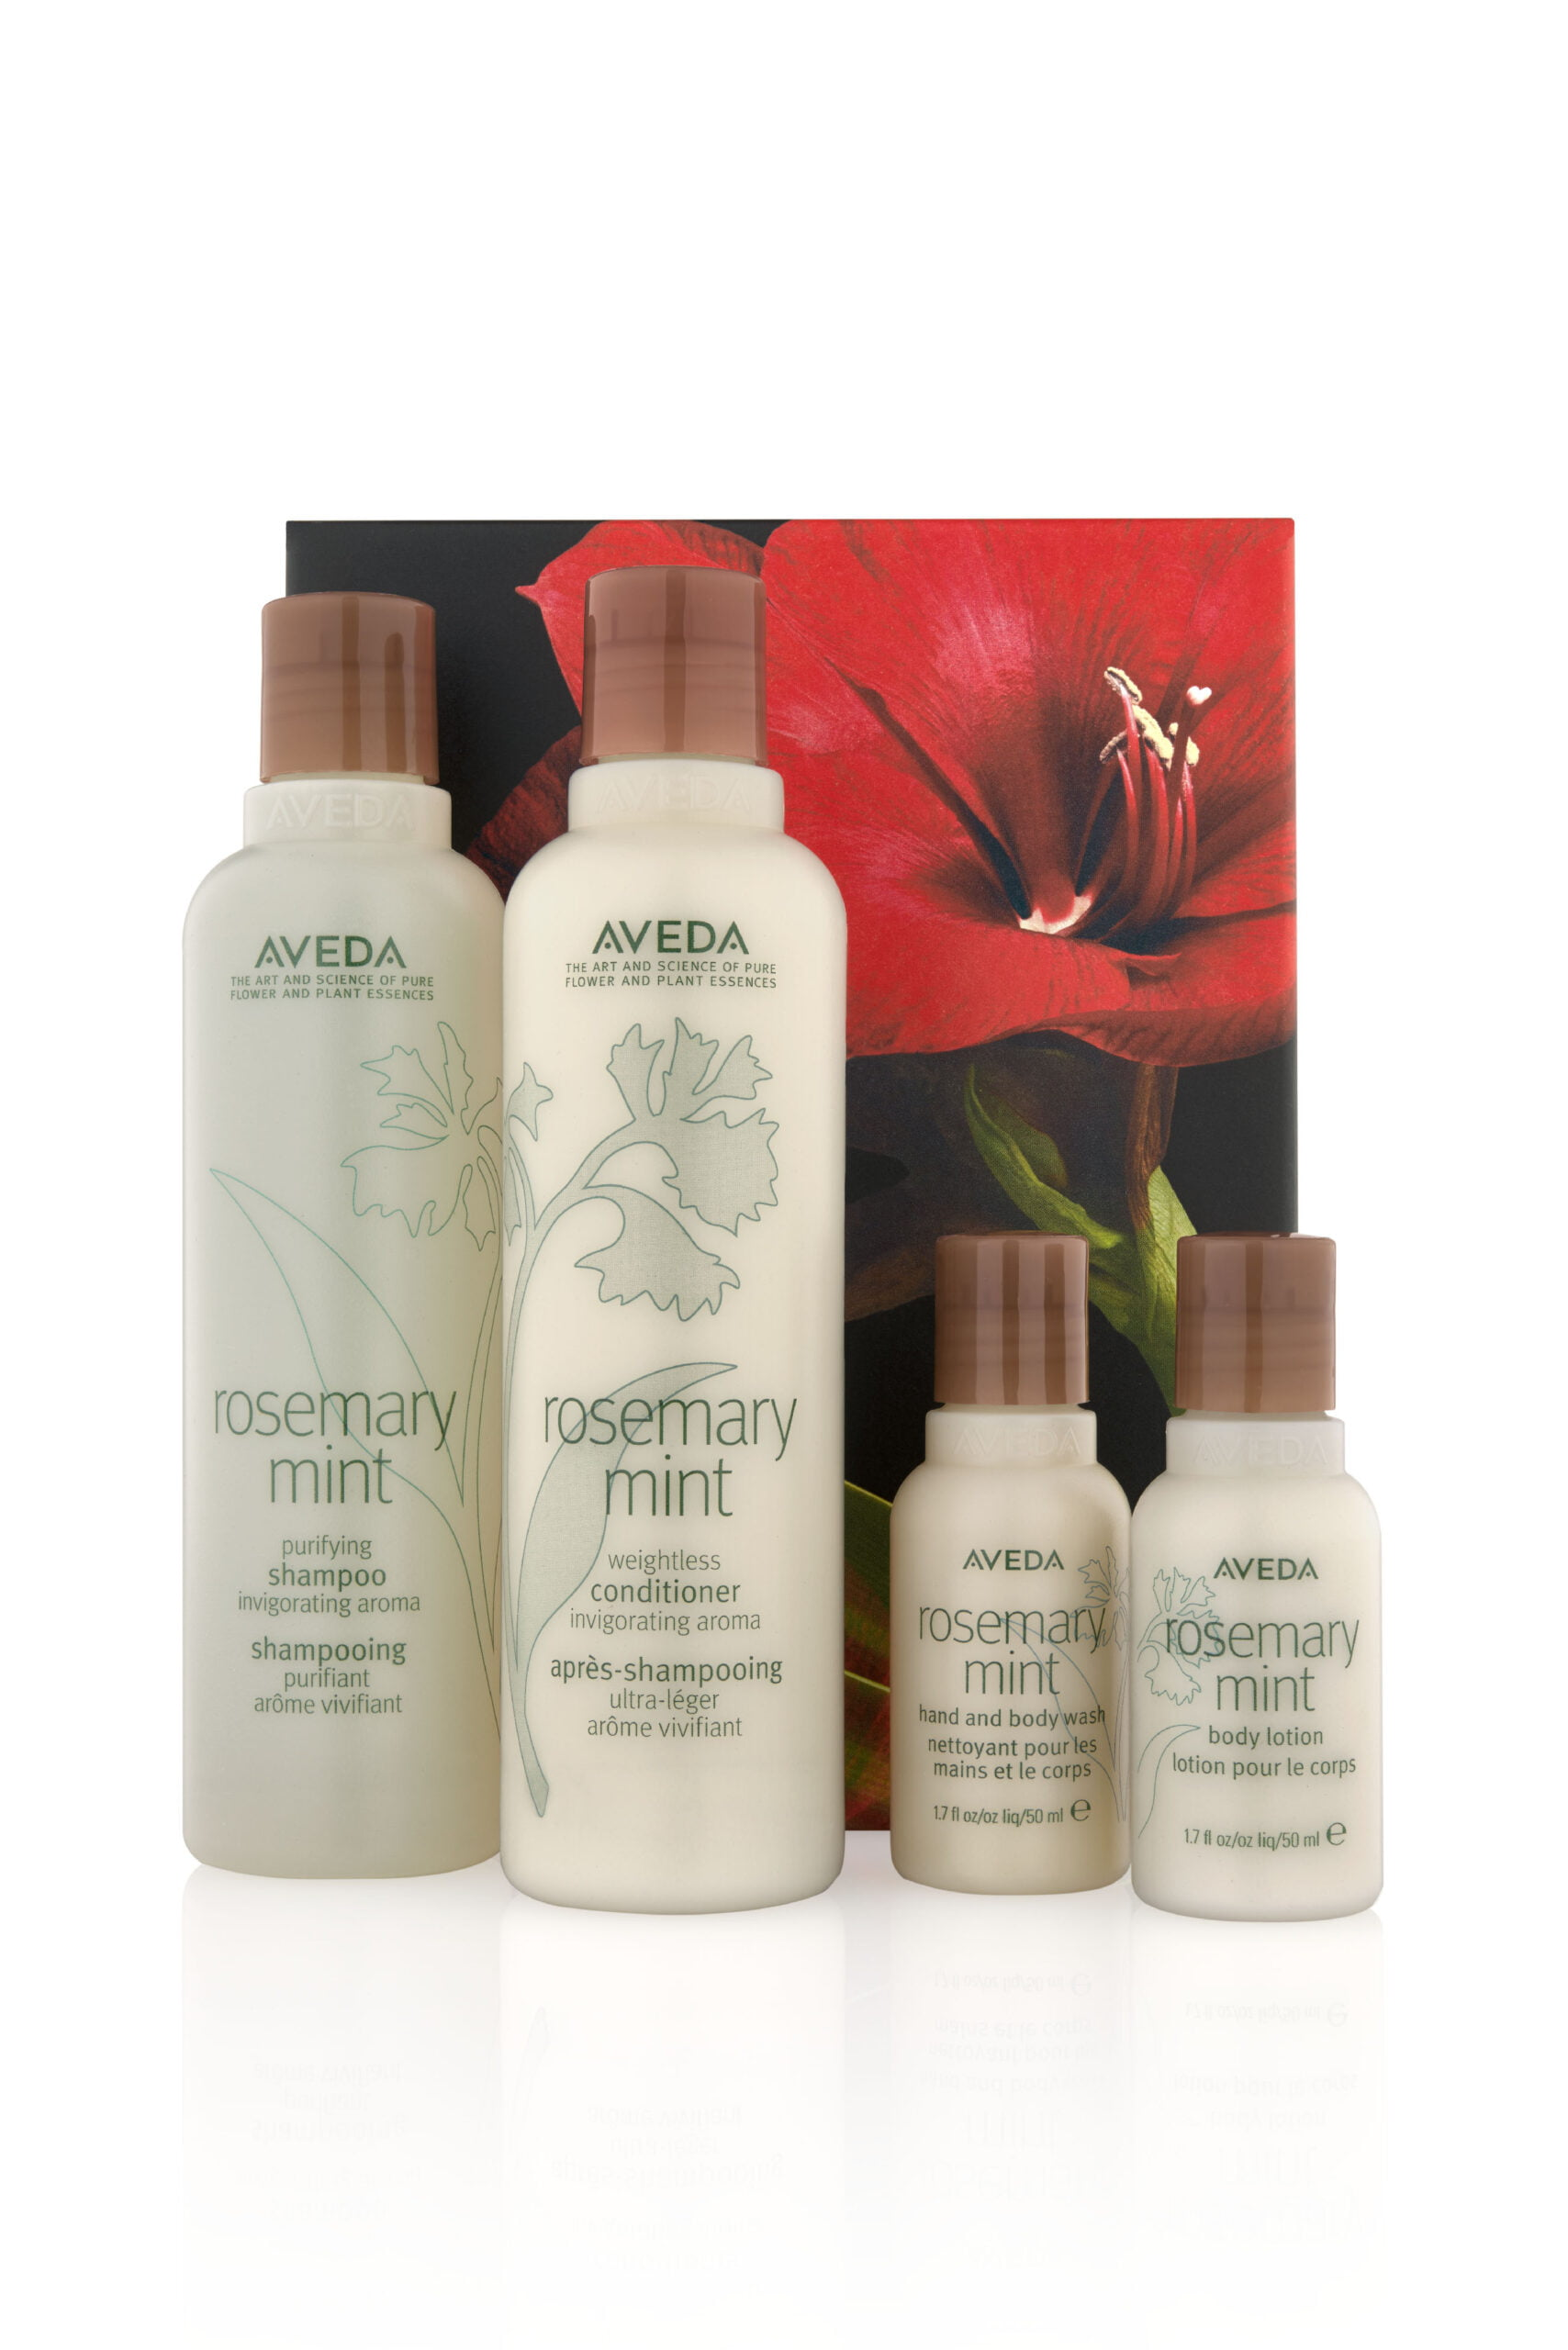 Rosemary Mint Holiday gift set now at Zucci